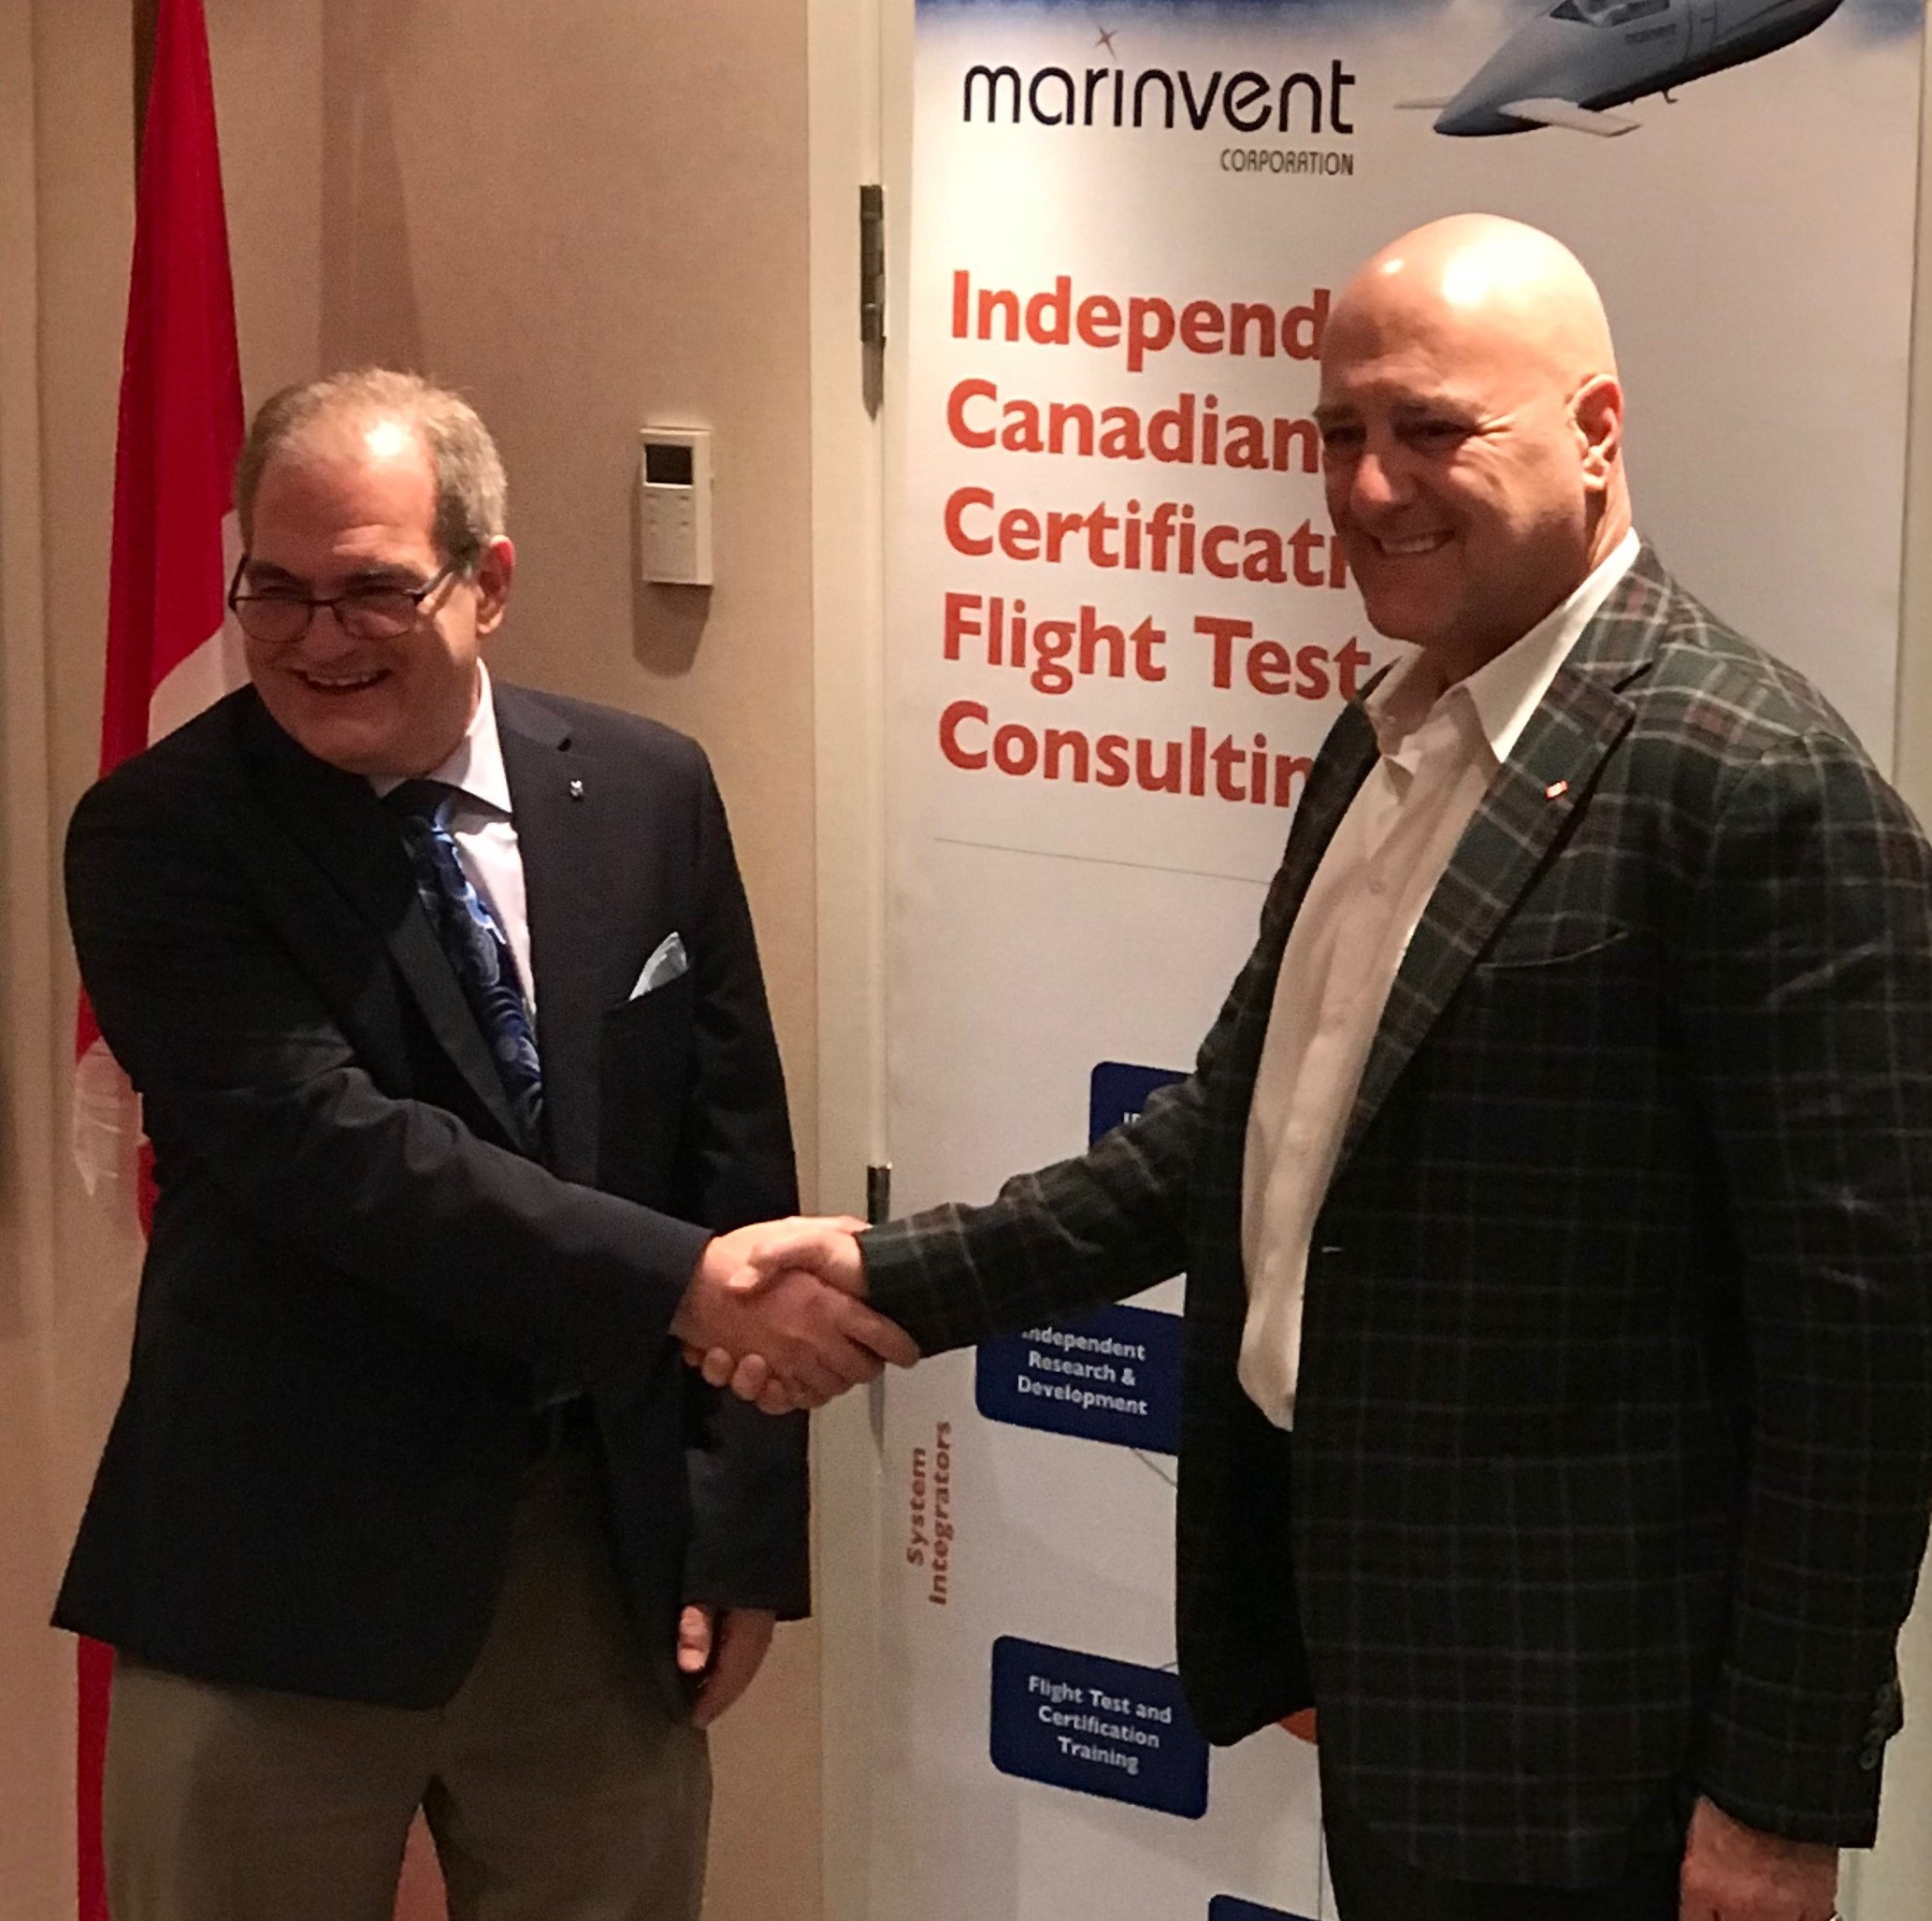 As a result of this contract award, the Government of Canada is Marinvent's launch customer for this award winning technology. Marinvent Photo